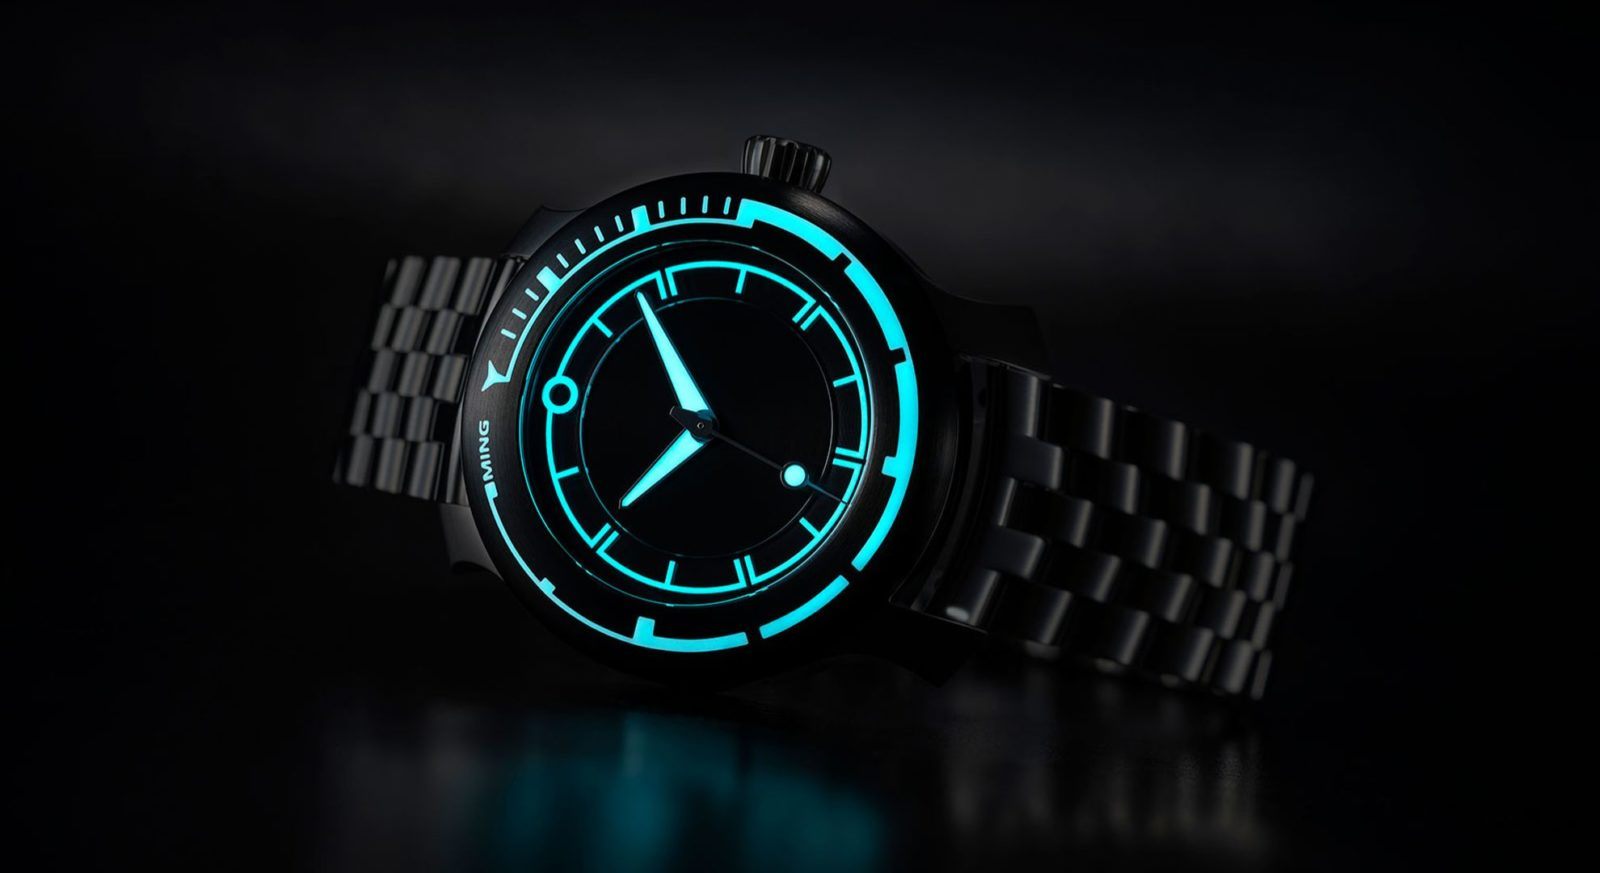 Ming launches a new timepiece, the Diver 18.01 H41